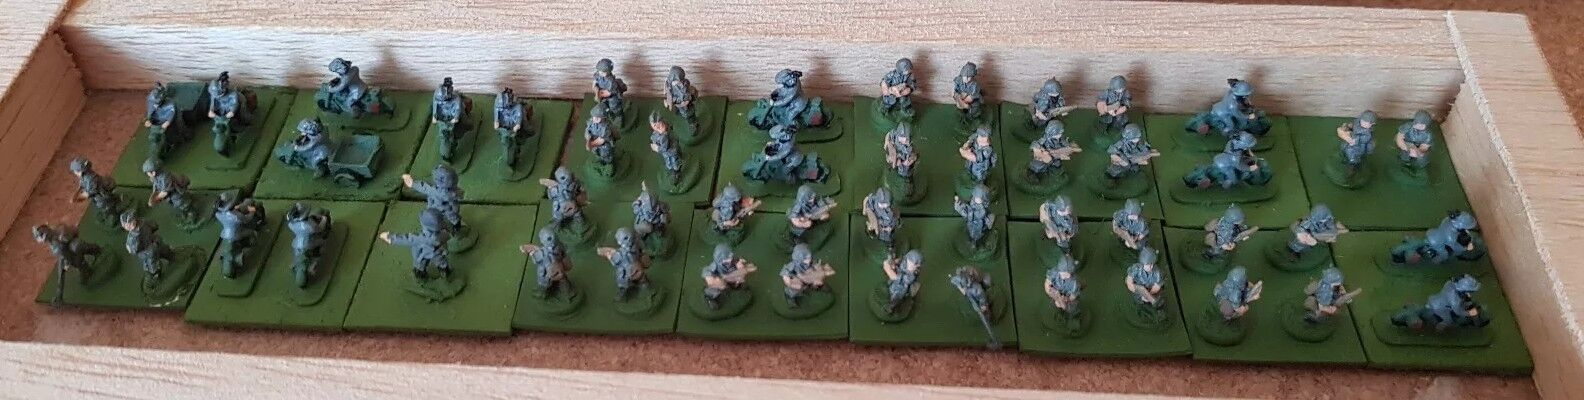 WW2 Ground Forces - Axis Forces - 1 200 scale